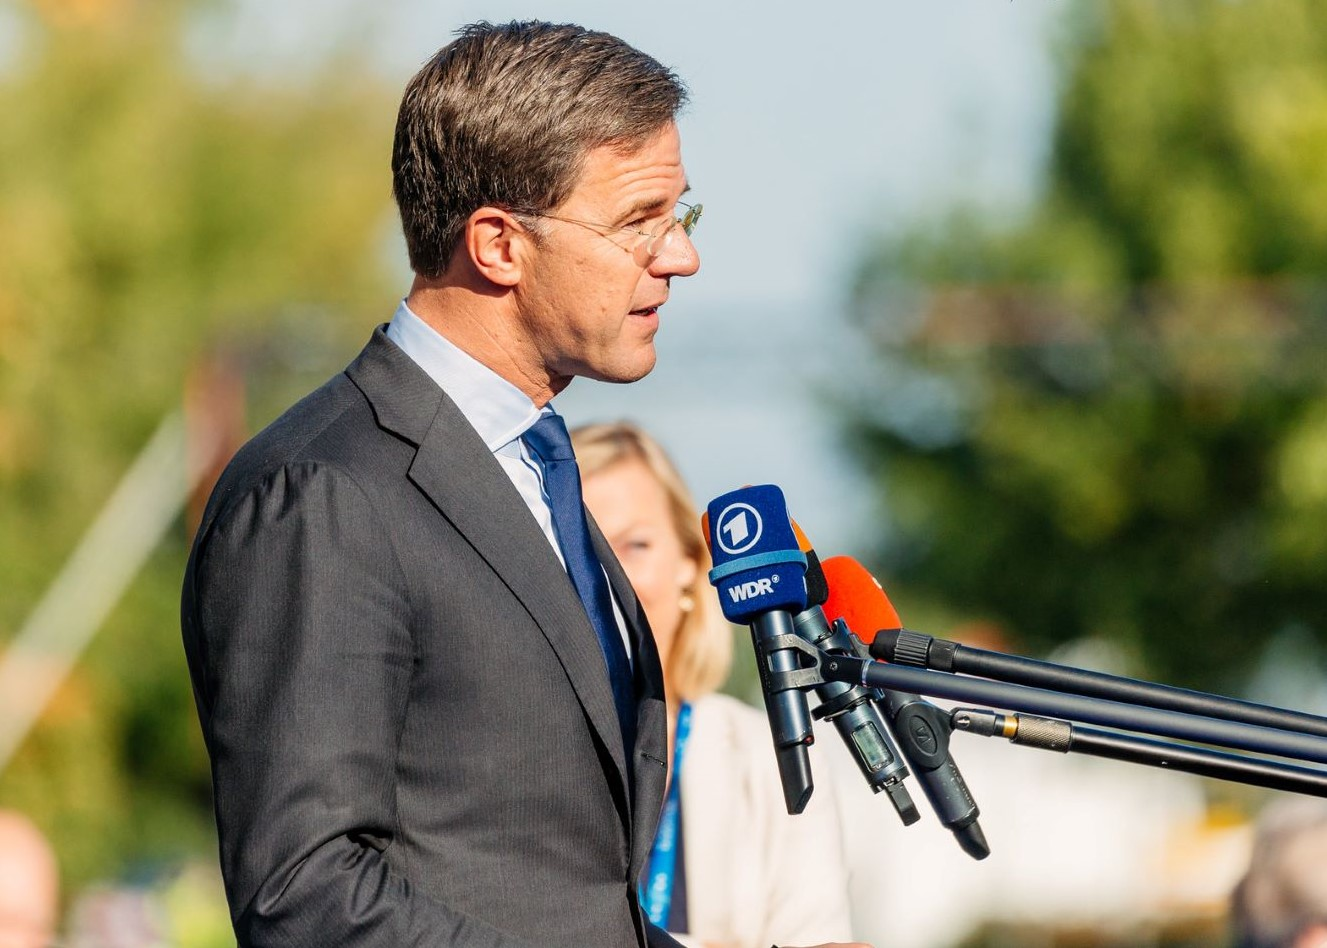 Mark Rutte - Foto: EU2017EE Estonian Presidency (Flickr cc)